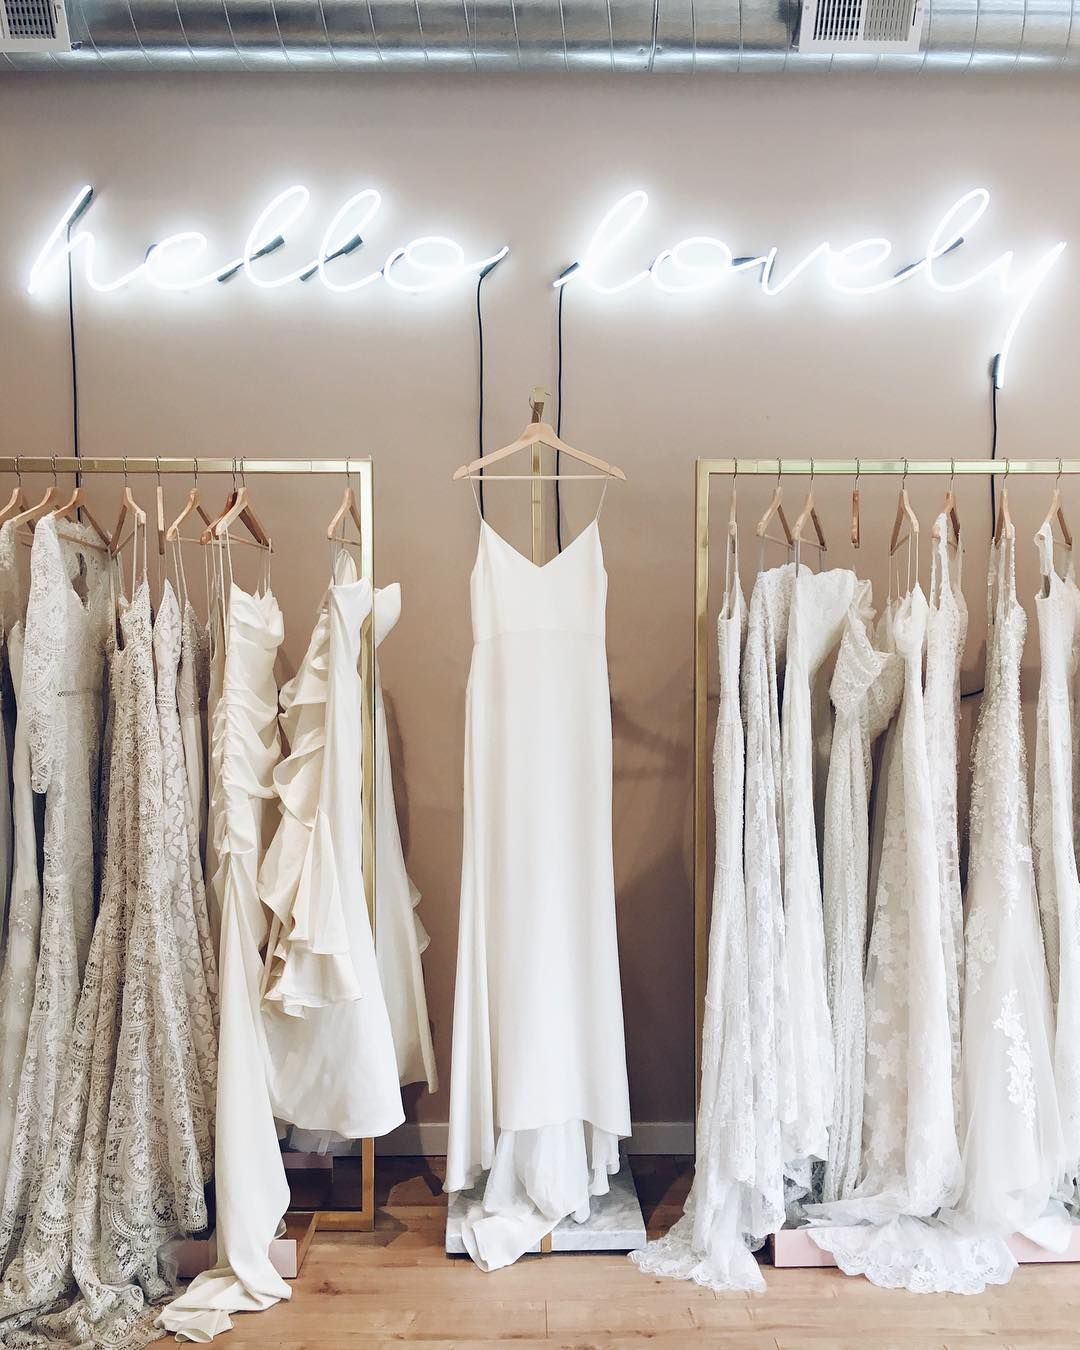 Self-Made Woman: How Lanie List Grew Her Indie Bridal Store Across the Country #bridalshops